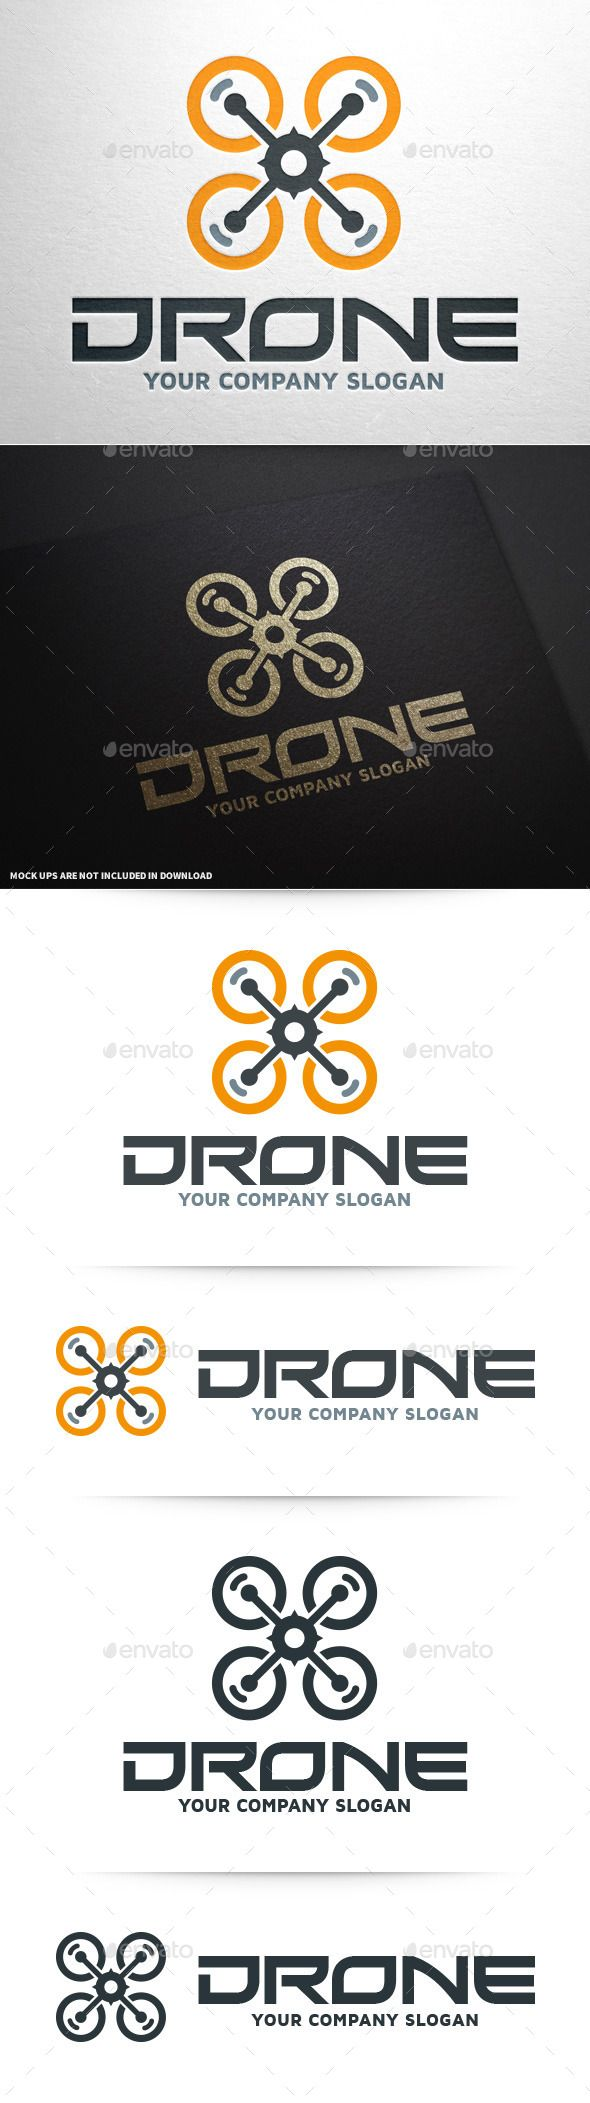 23 best logos images on pinterest logos drones and logo designing another example of an interesting drone logo simpler than the others but visually balanced